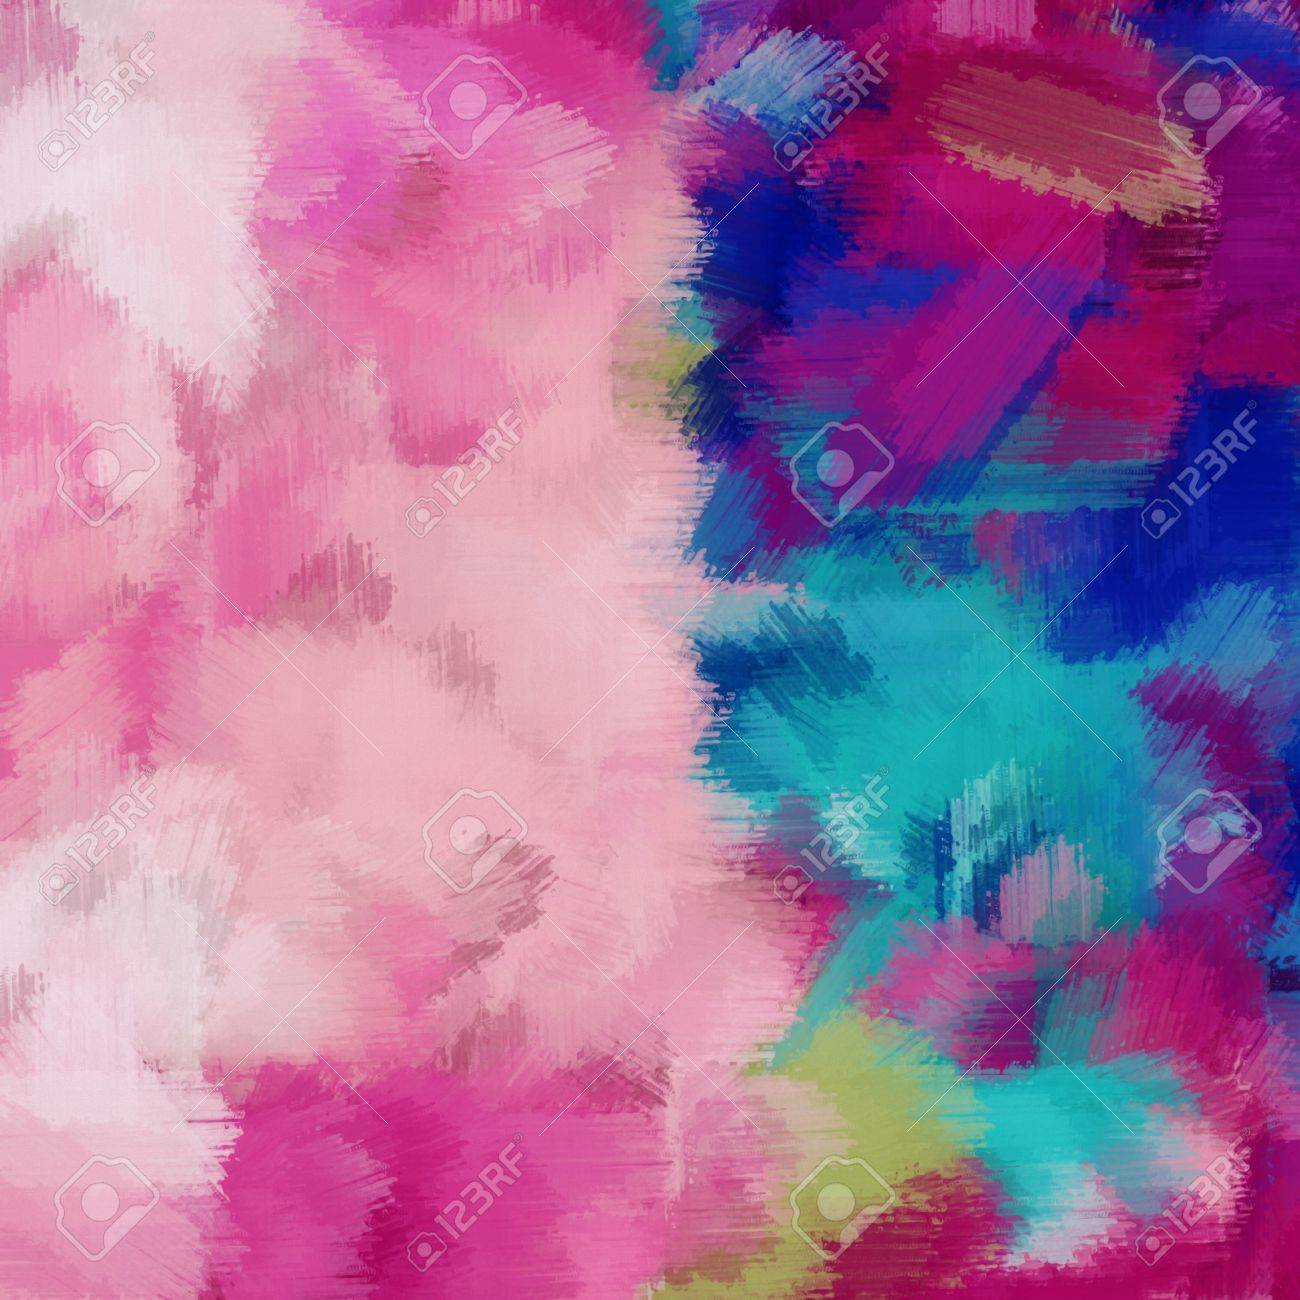 Pink Dark Blue Red And Blue Painting Abstract Background